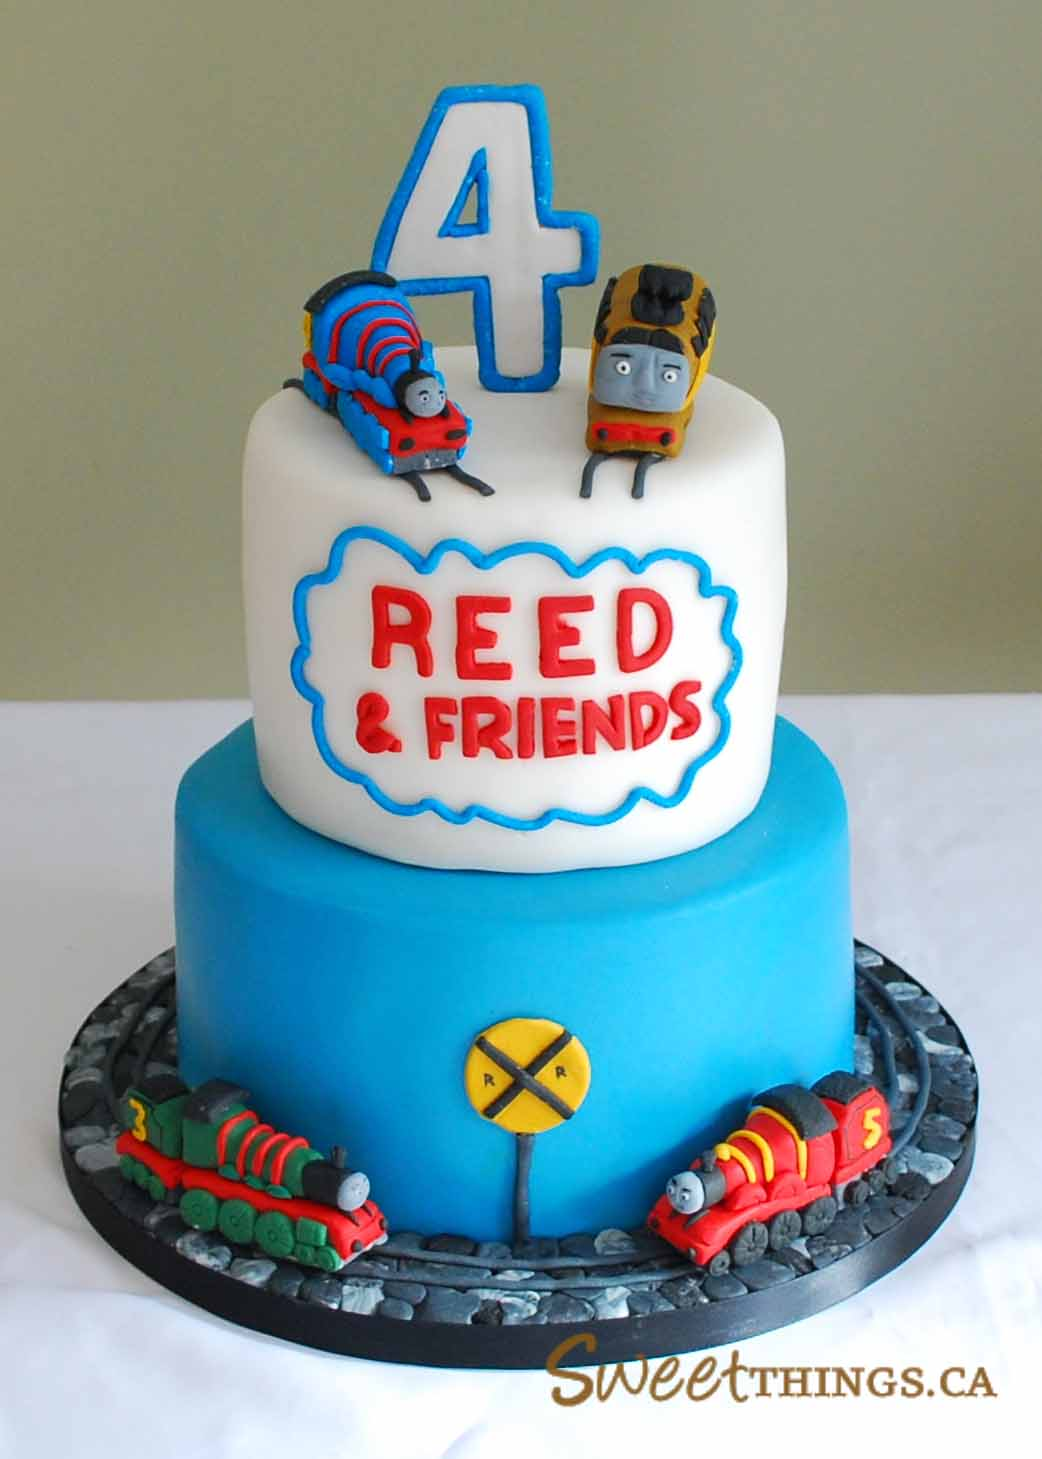 I Have Been Lucky Enough To Design Reeds Cakes For Many Years On His 1st Birthday It Was Favorite Stuffed Animal 2nd